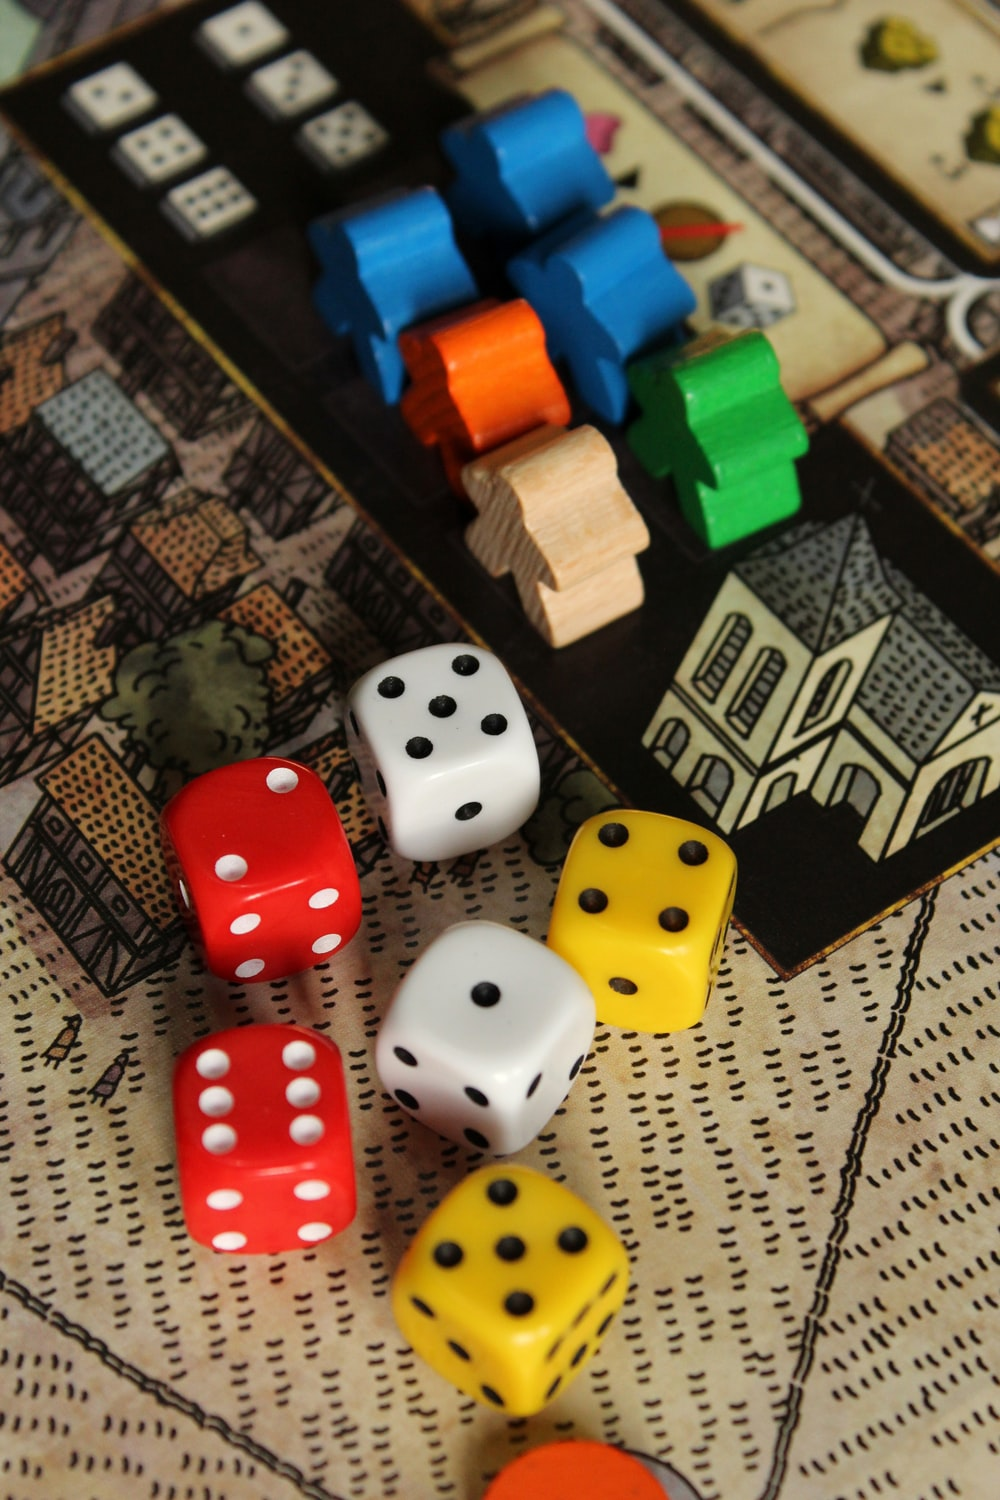 six assorted-color dice